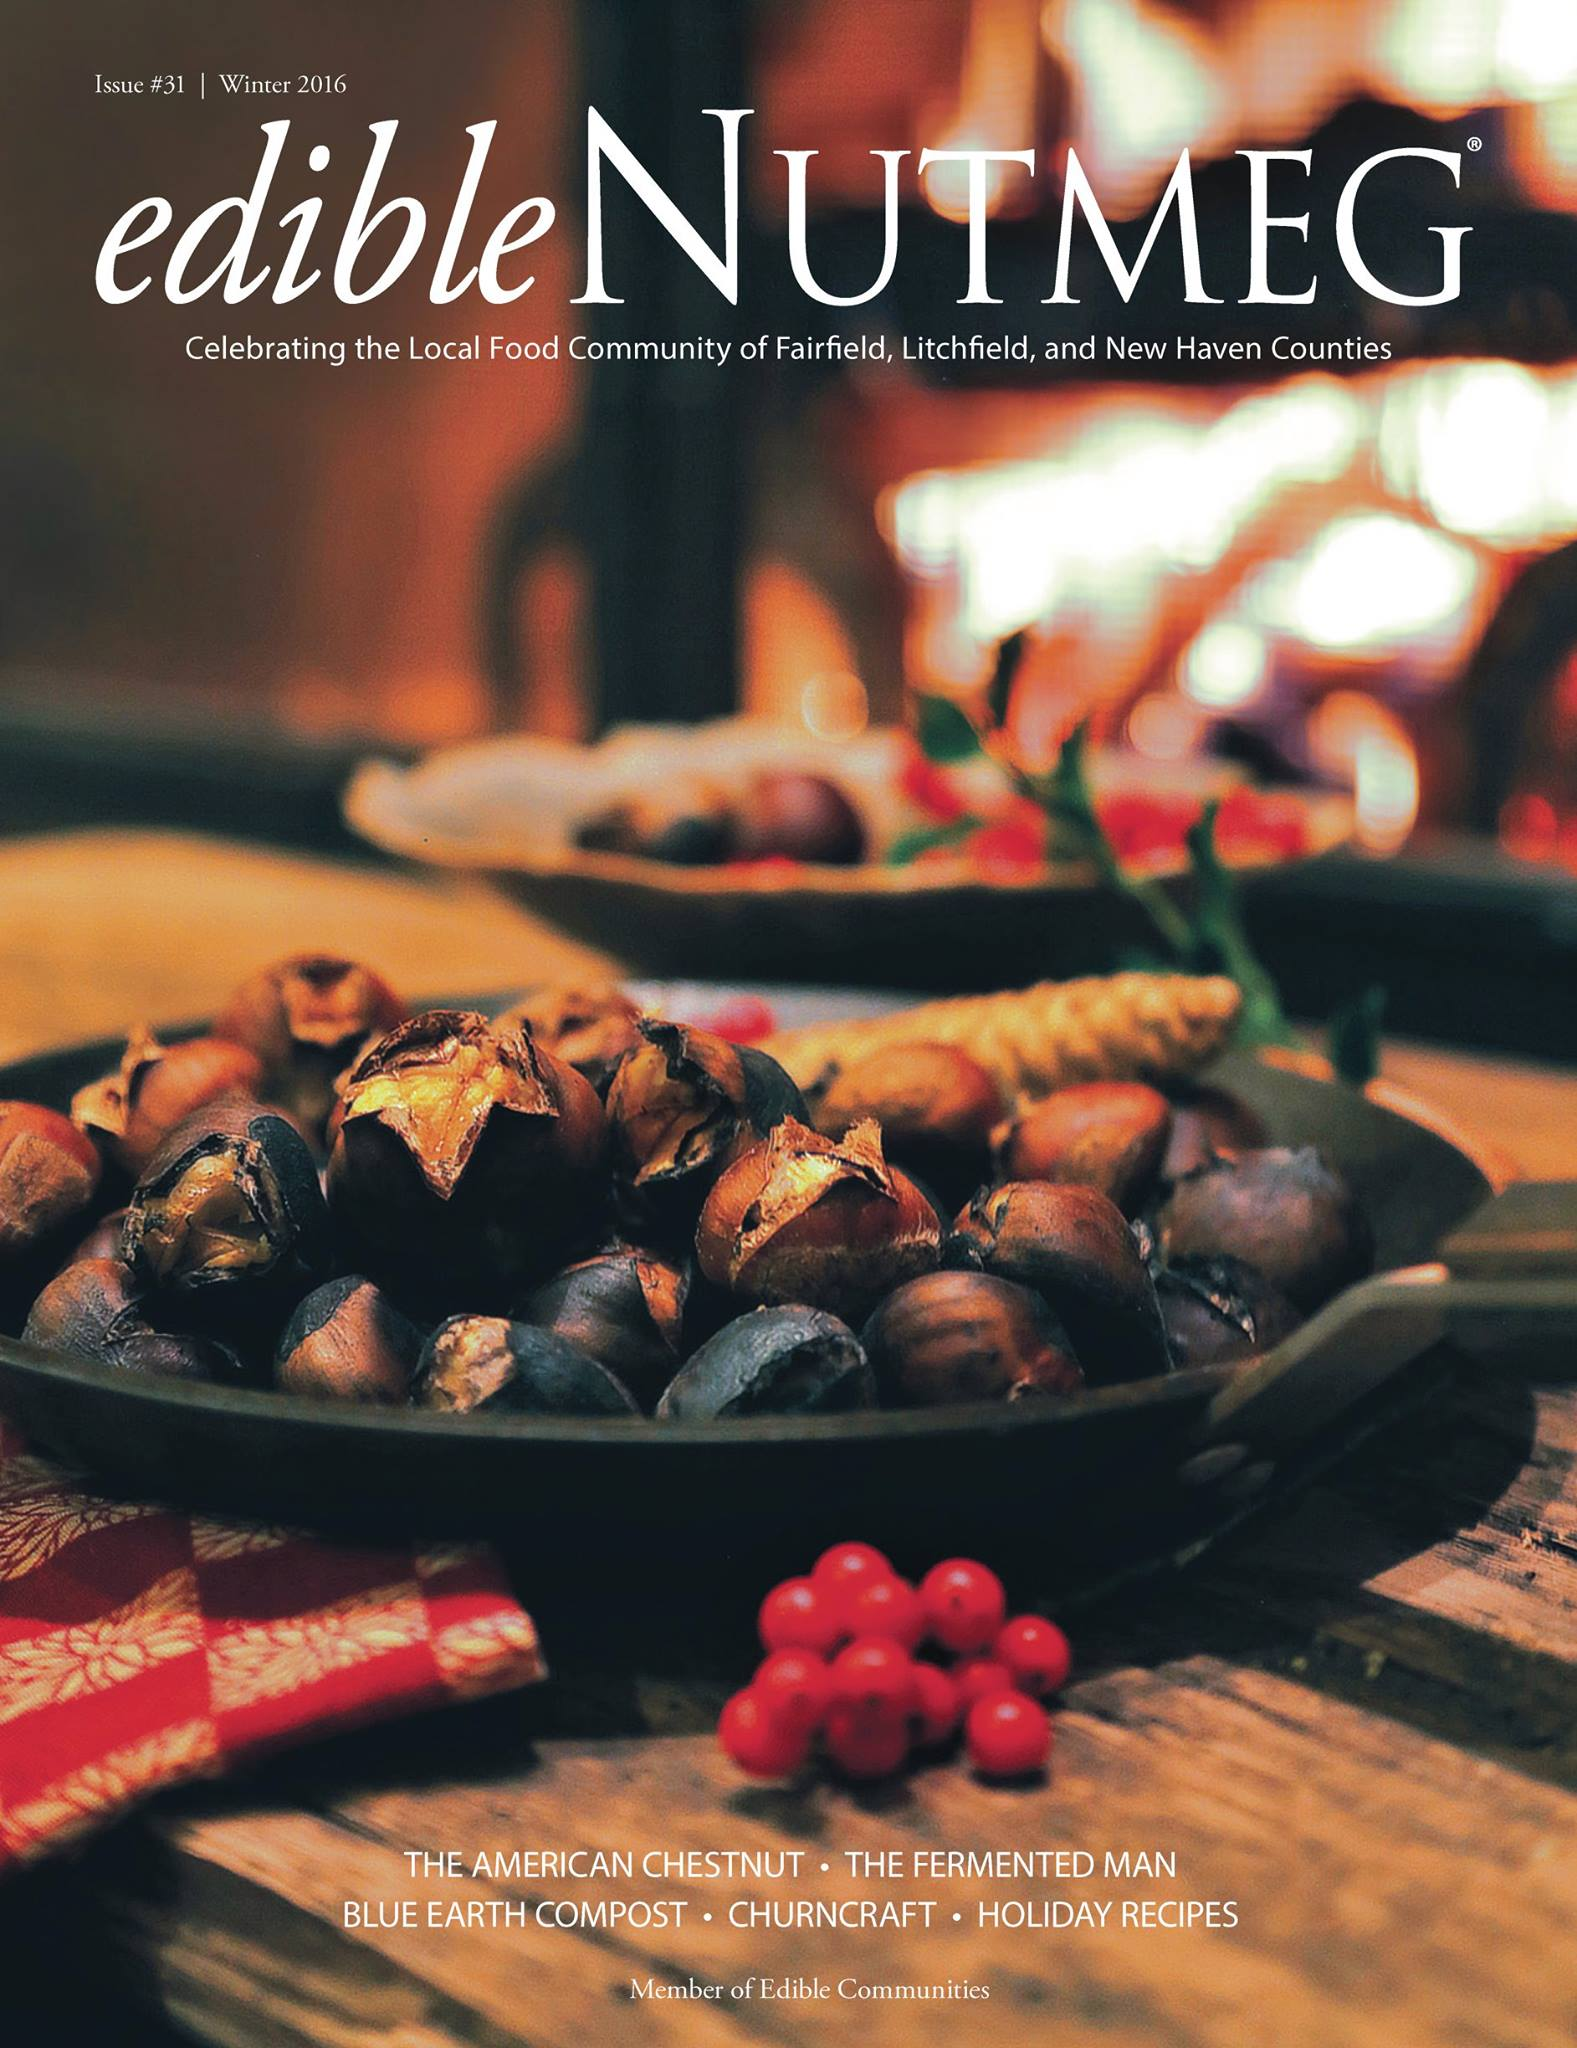 Edible Nutmeg Winter Issue